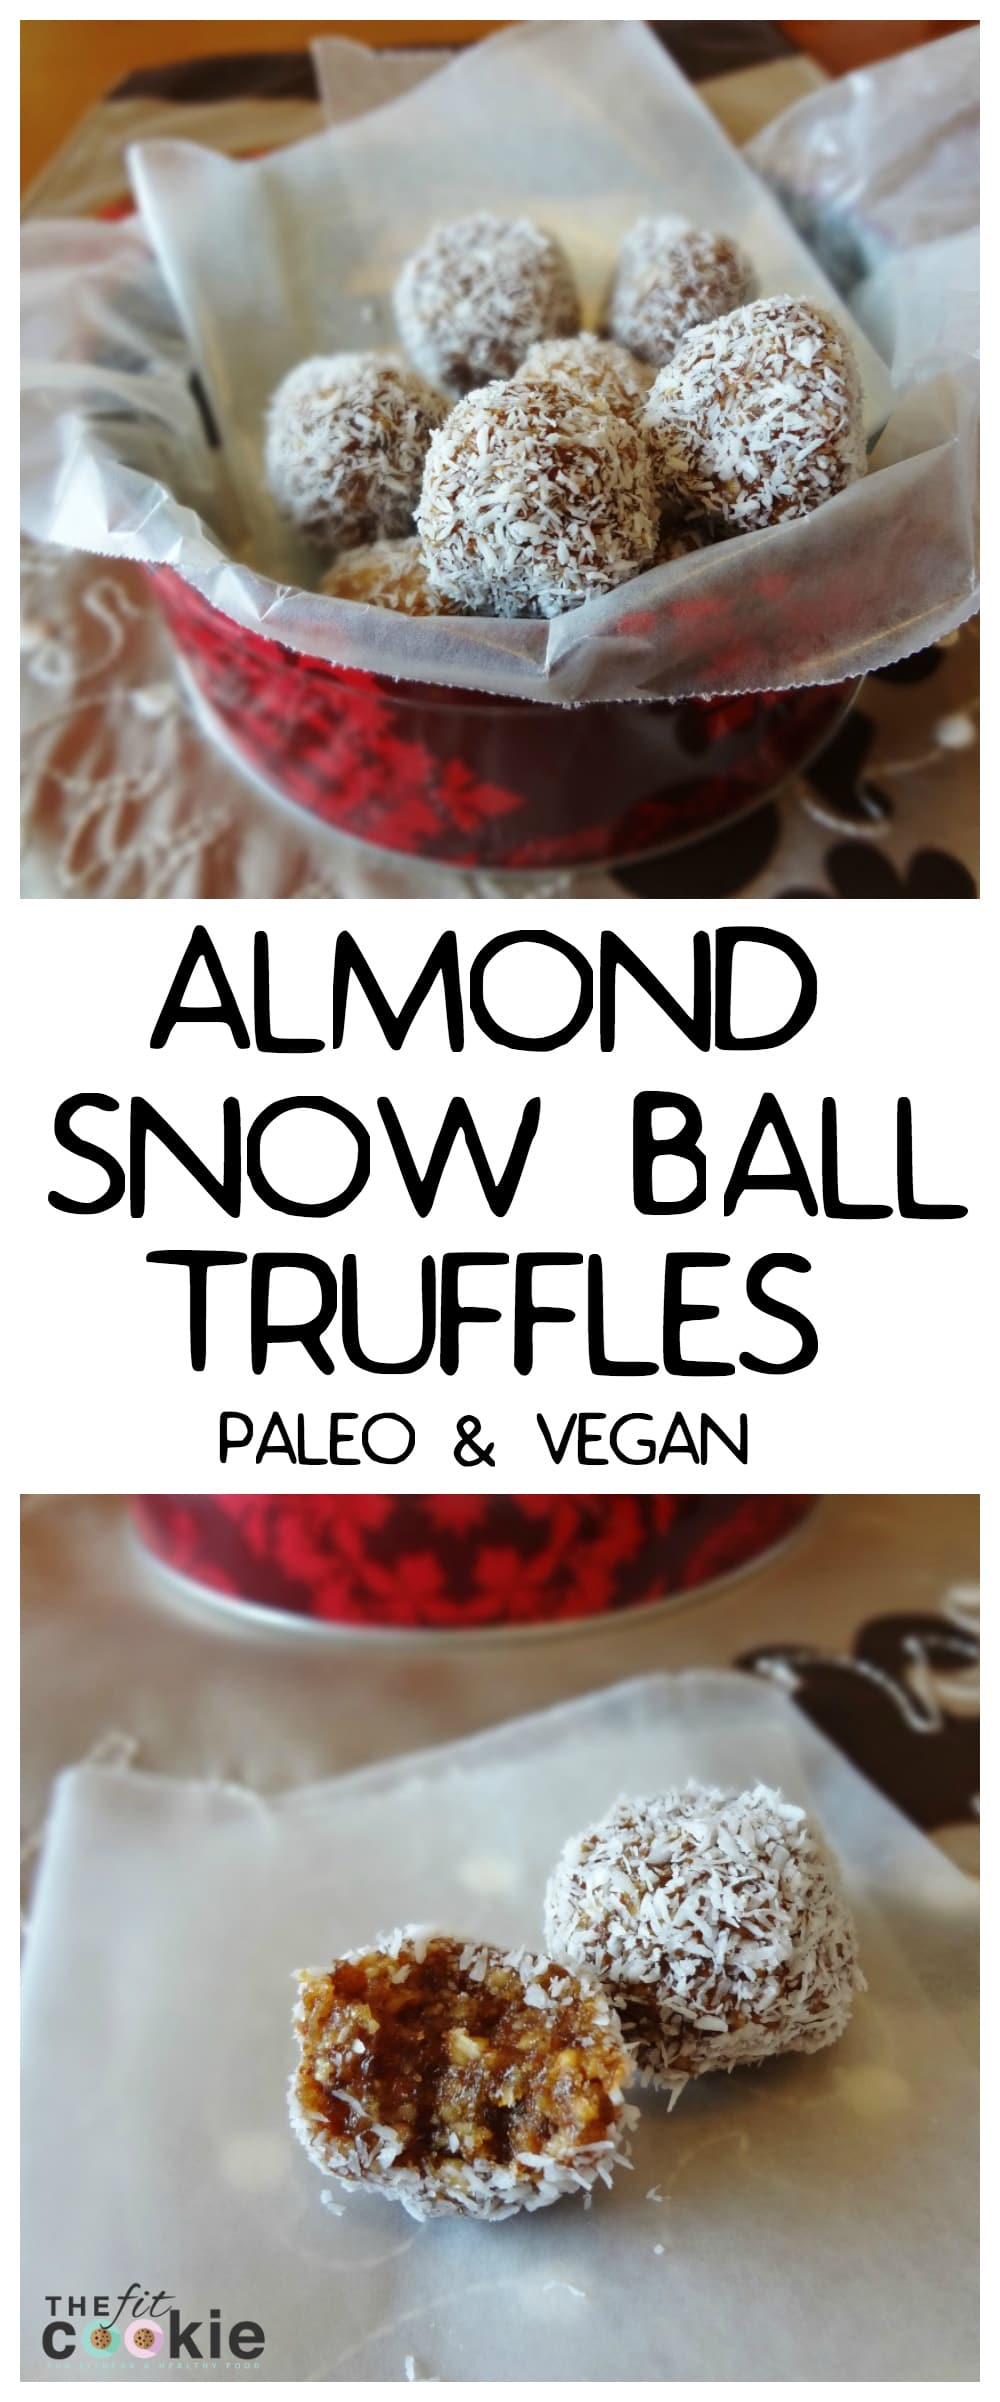 These Almond Snow Ball Truffles (aka Almond Coconut Bites) are the perfect healthy treat with only 5 ingredients. They are perfect for snacks or homemade gifts! - @TheFitCookie #paleo #vegan